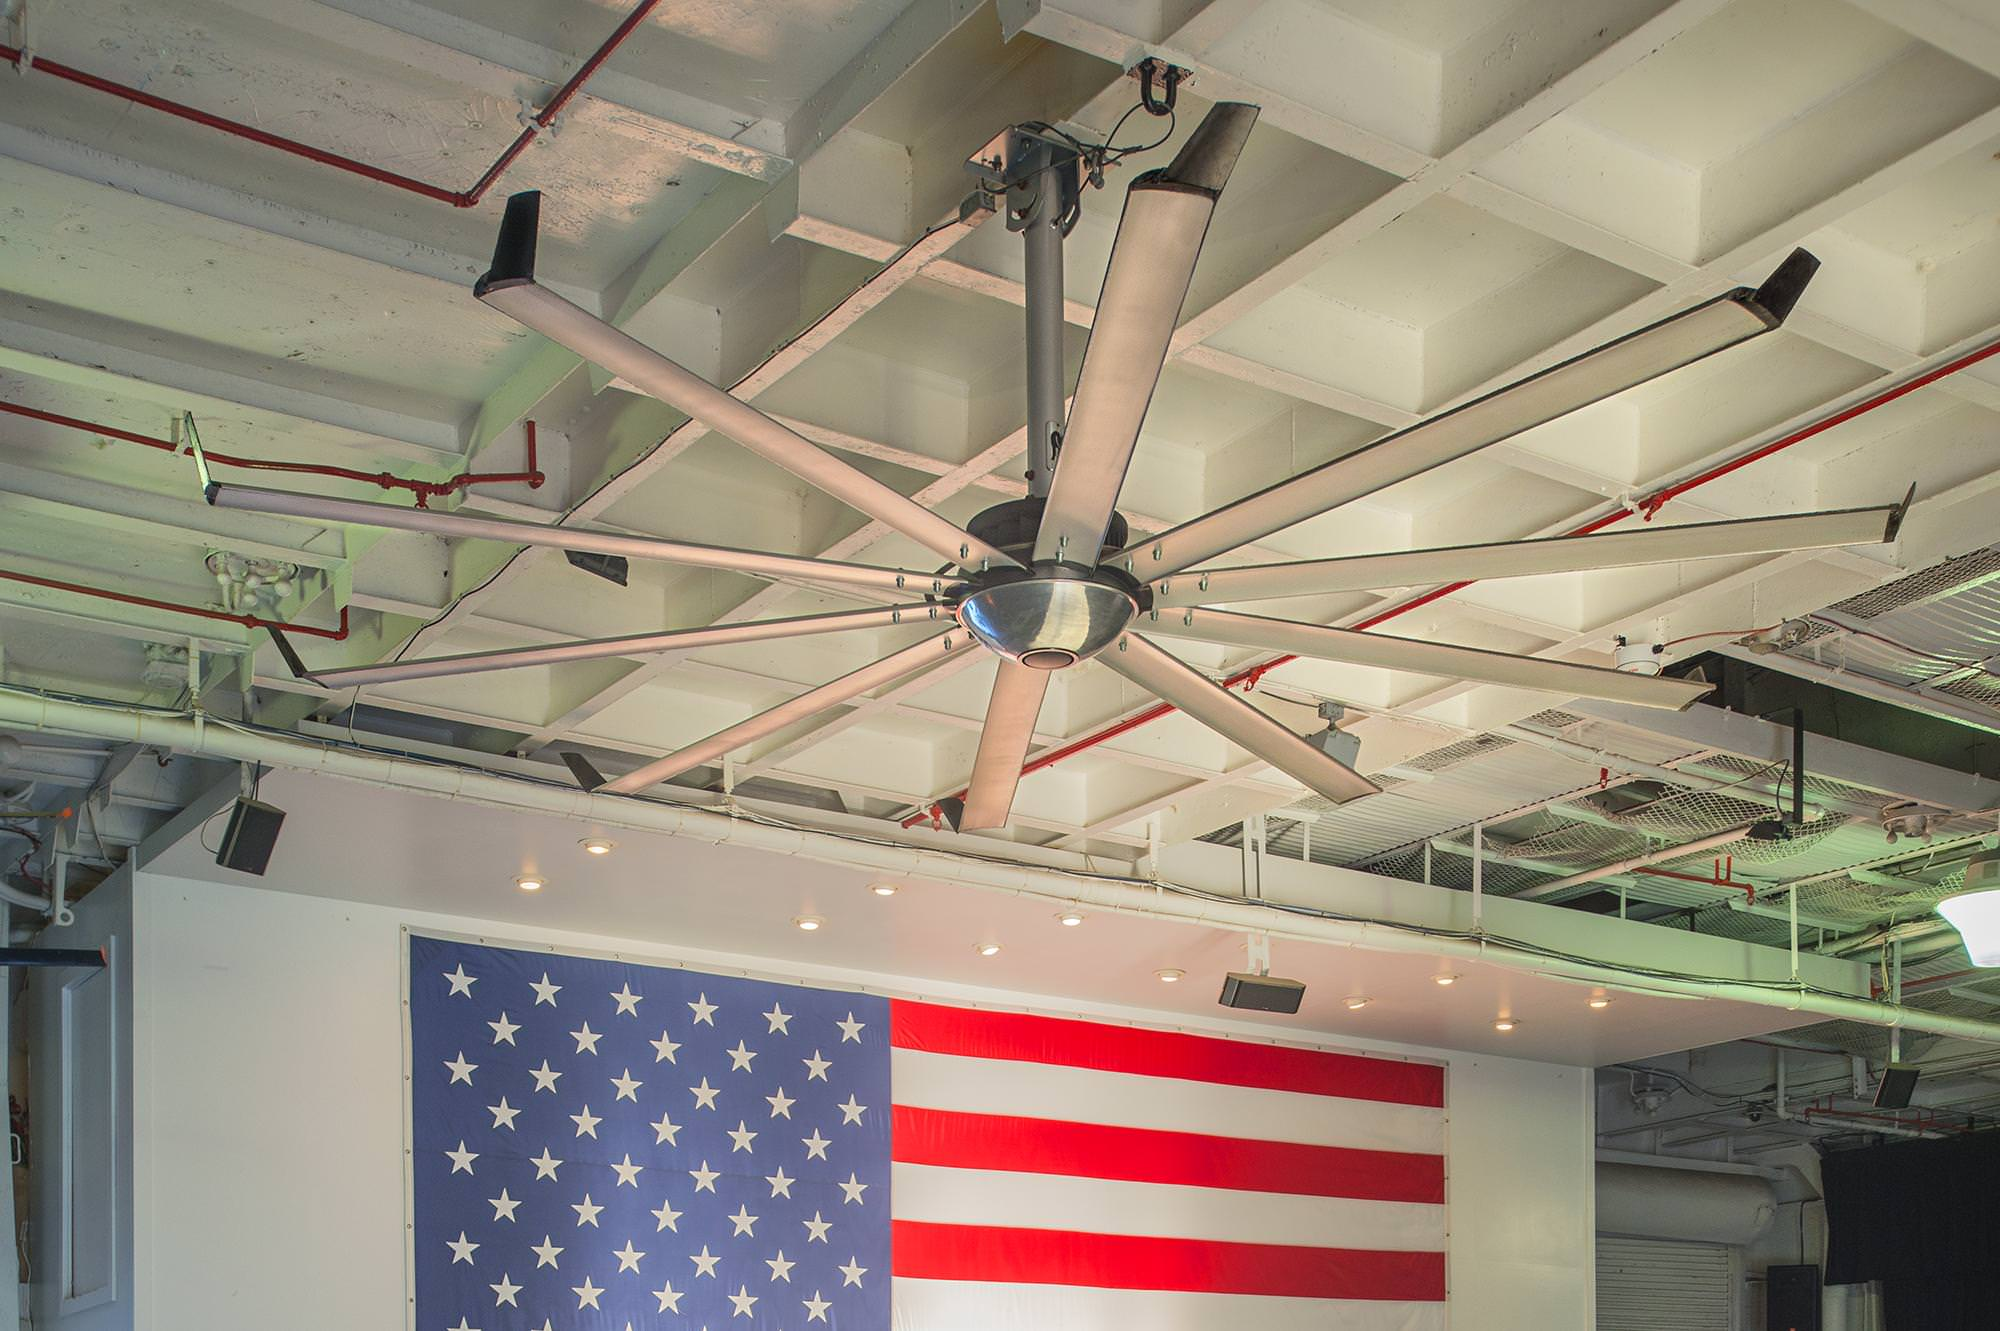 Ceiling Fans for Government Facilities Duty from Big Ass Fans